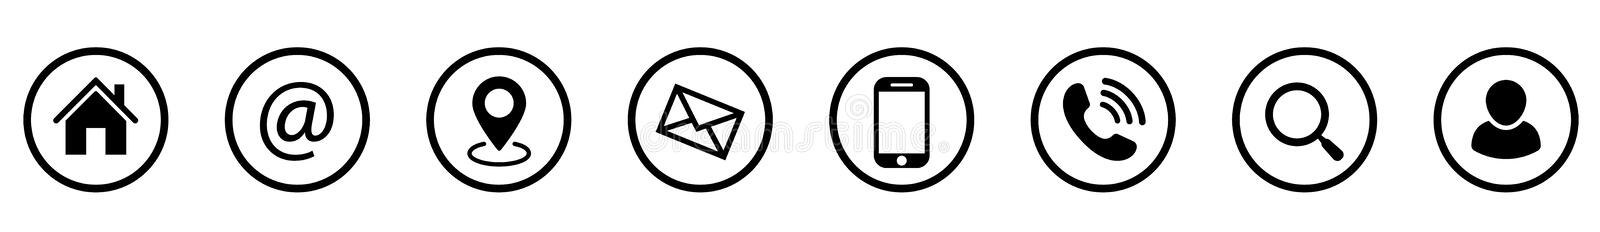 Communication icon set. Phone, mail, search and others - stock vector royalty free stock photography